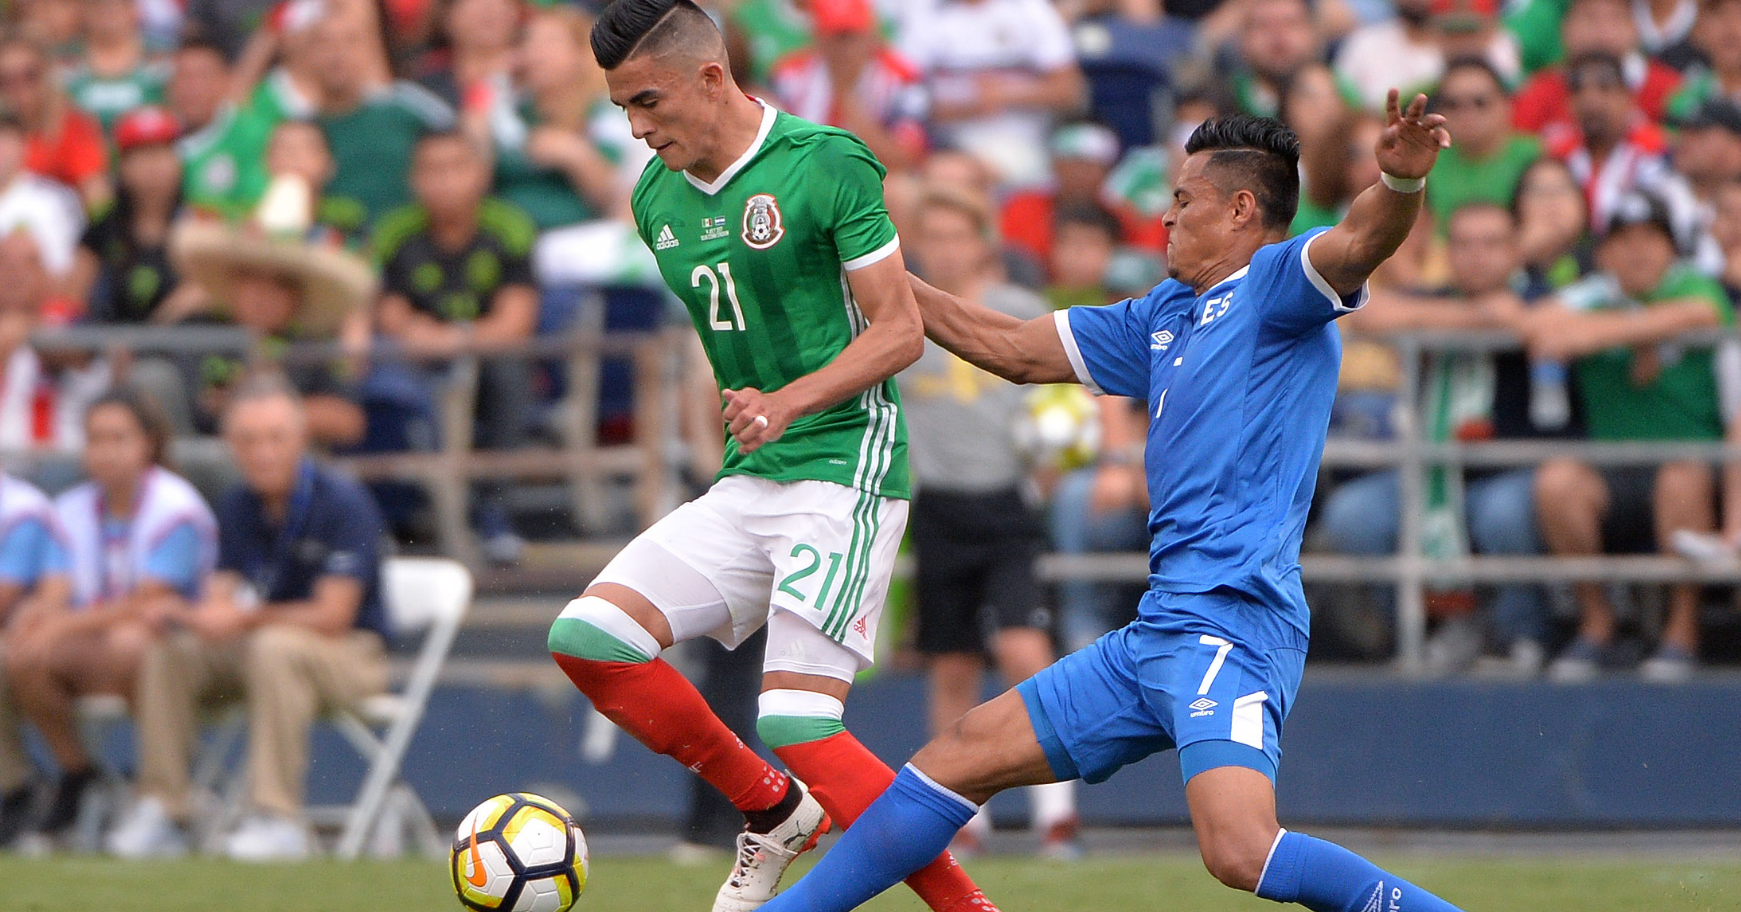 Mexico vs Honduras Preview: Will Osorio Begin to Soften His Rotations in the Knockout Round of the Gold Cup?